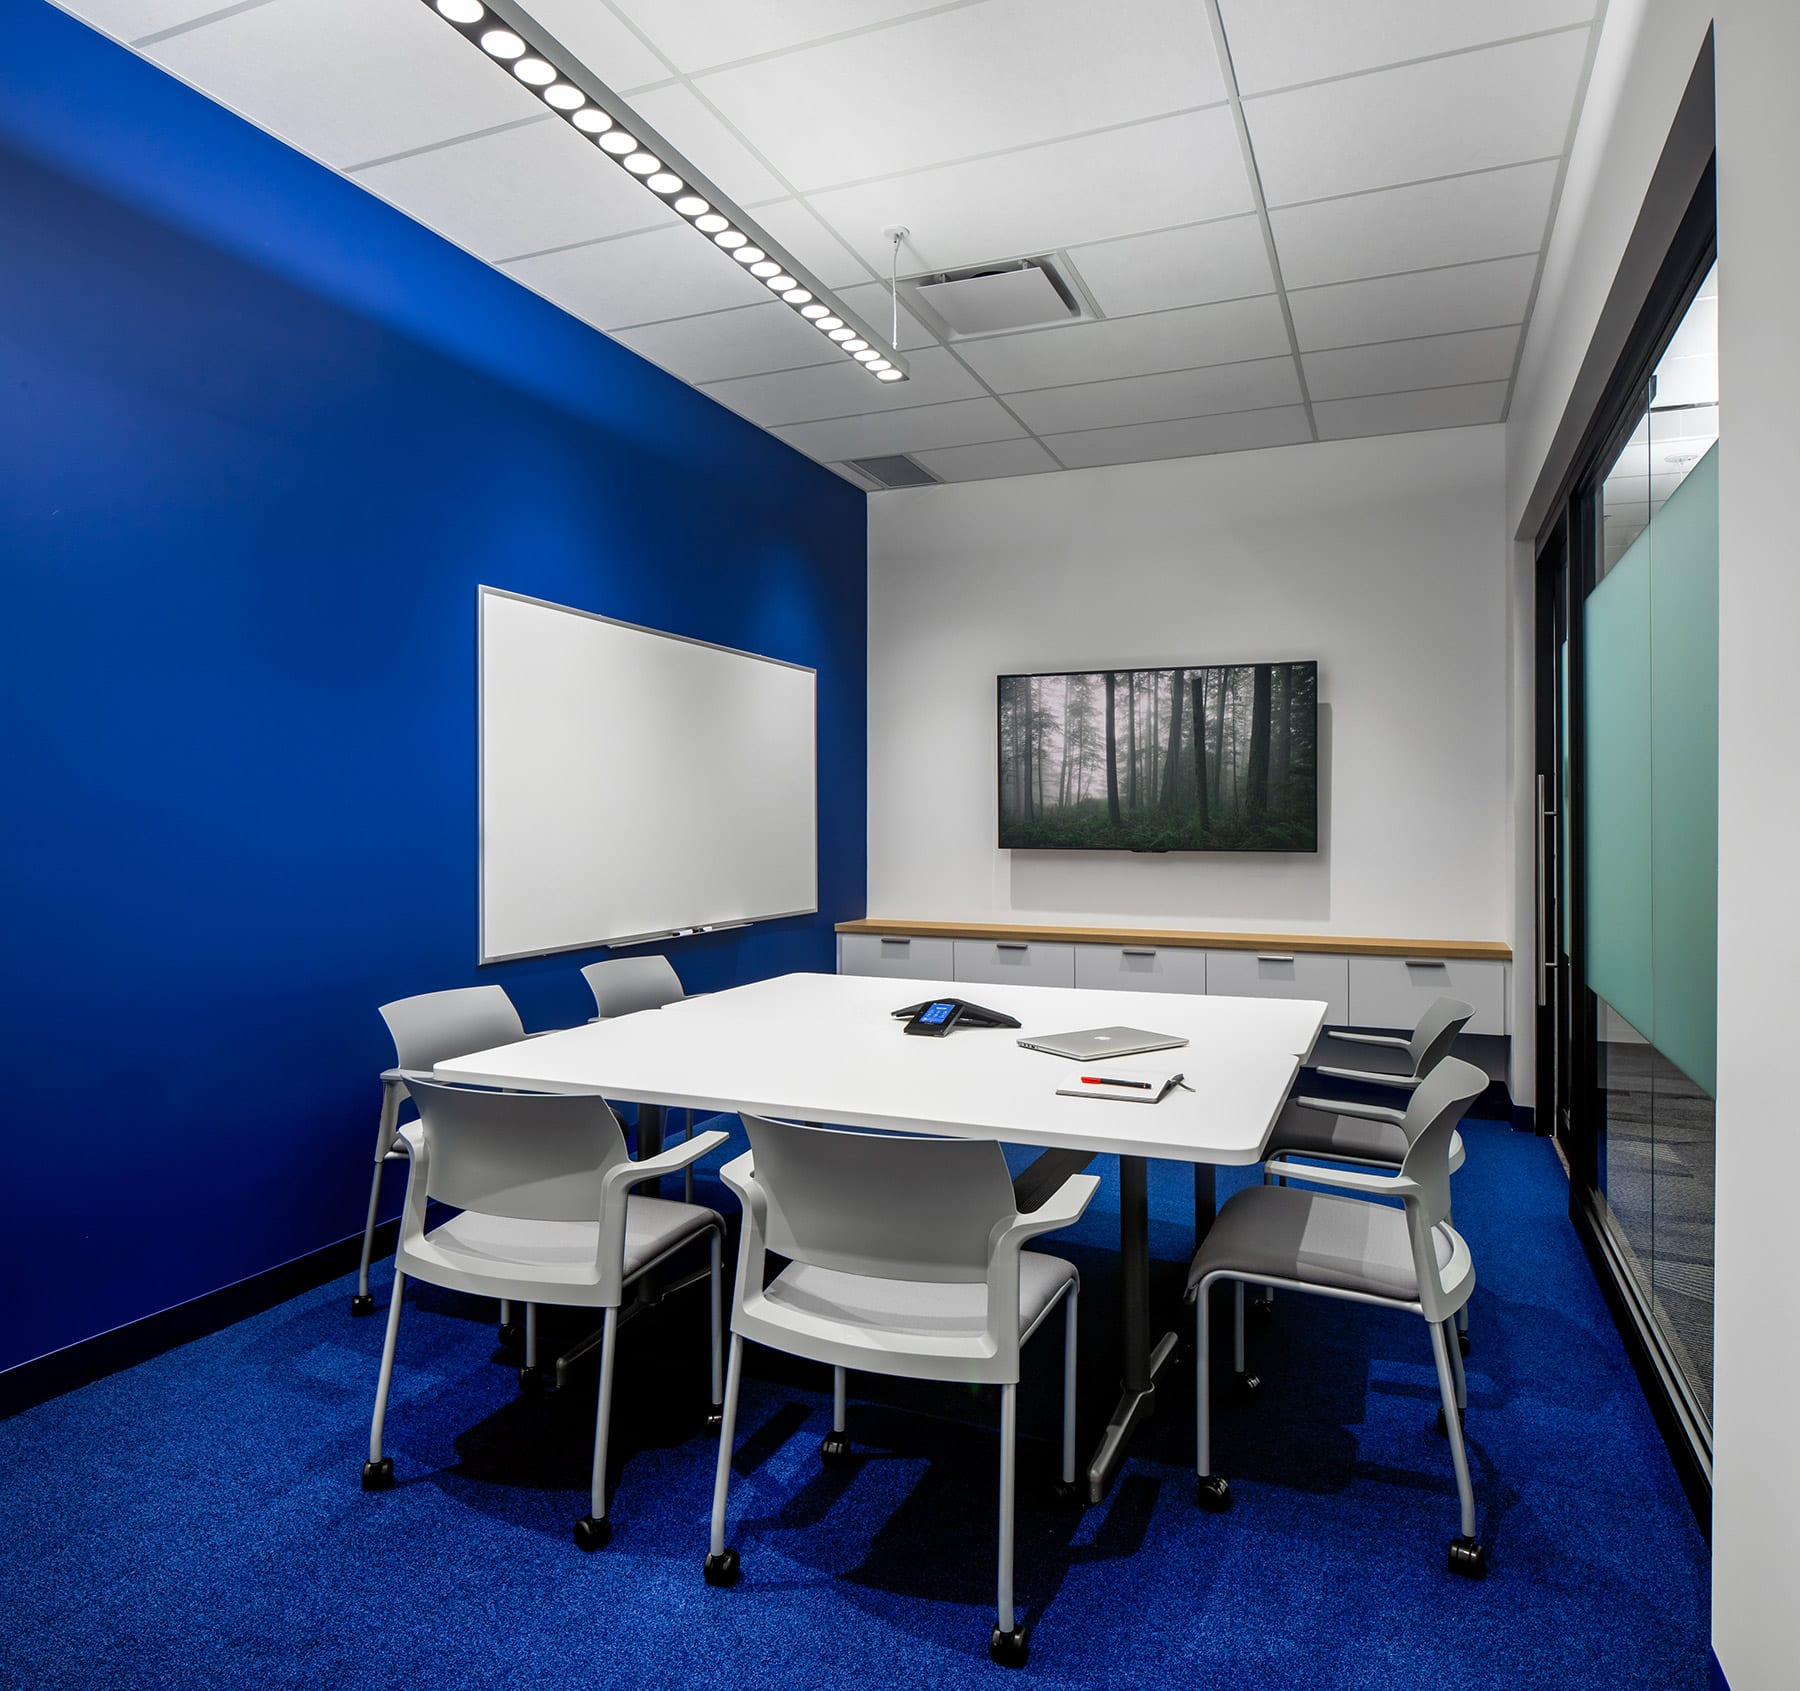 Health Informatics medium office meeting room with navy blue painted walls and carpets, whiteboard and TV